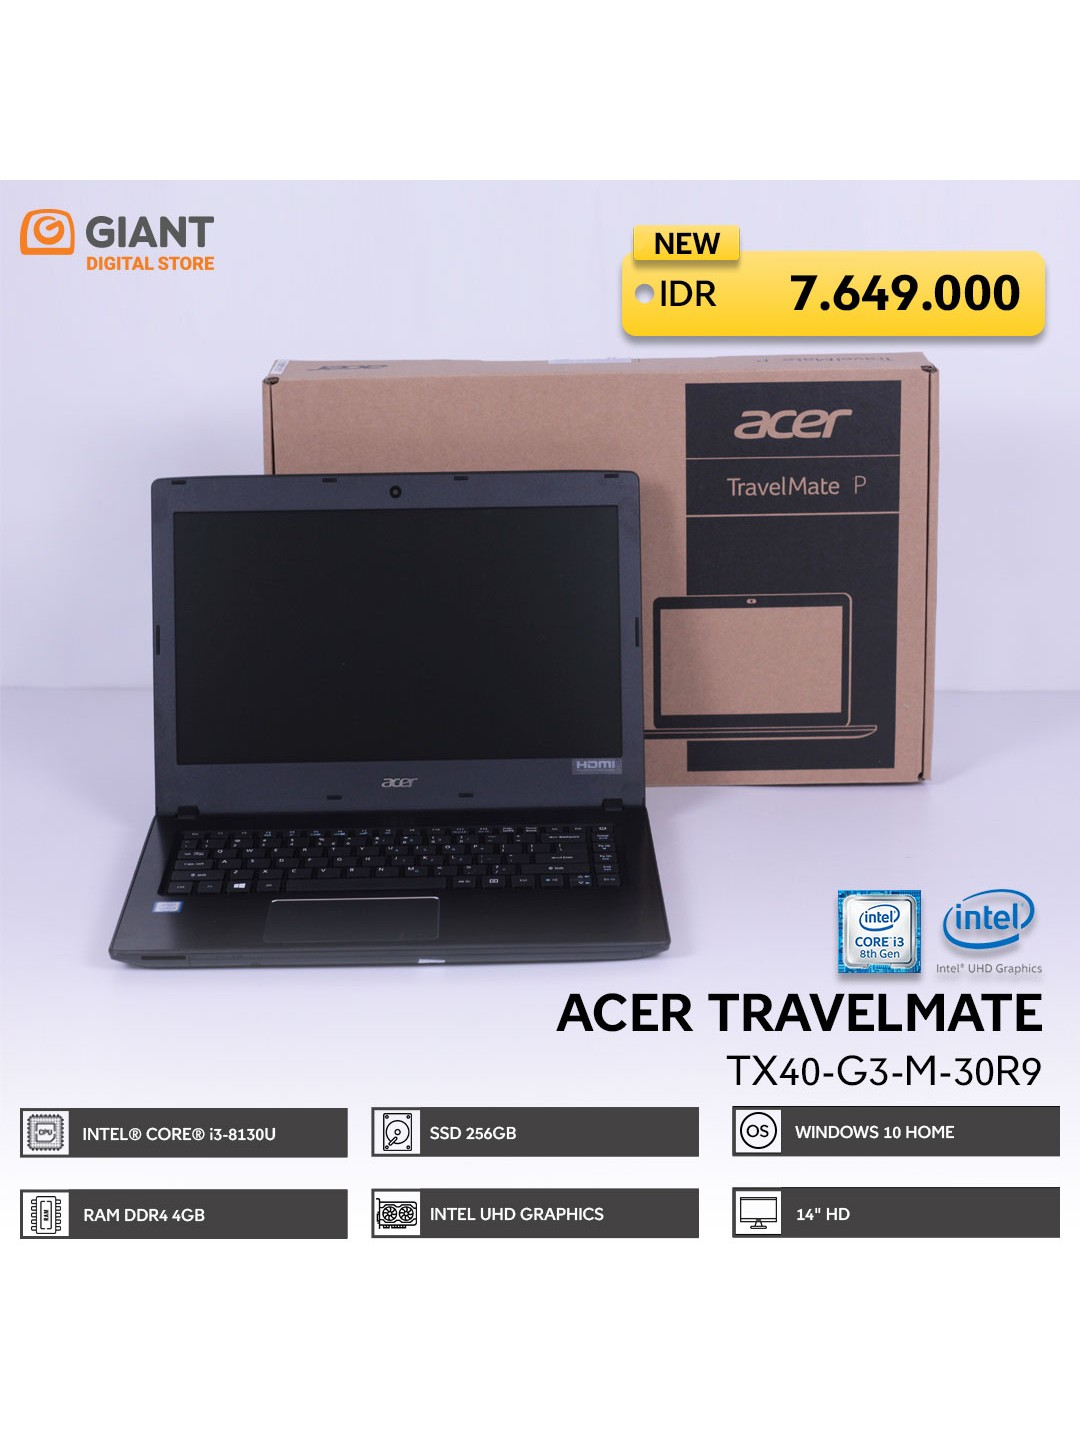 "ACER TMTX40-G3-M-30R9 (I3-8130U / 4GB DDR4 / 256GB SSD / 14"" HD / VGA INTEL UHD GRAPHICS / WIN10) BLACK"